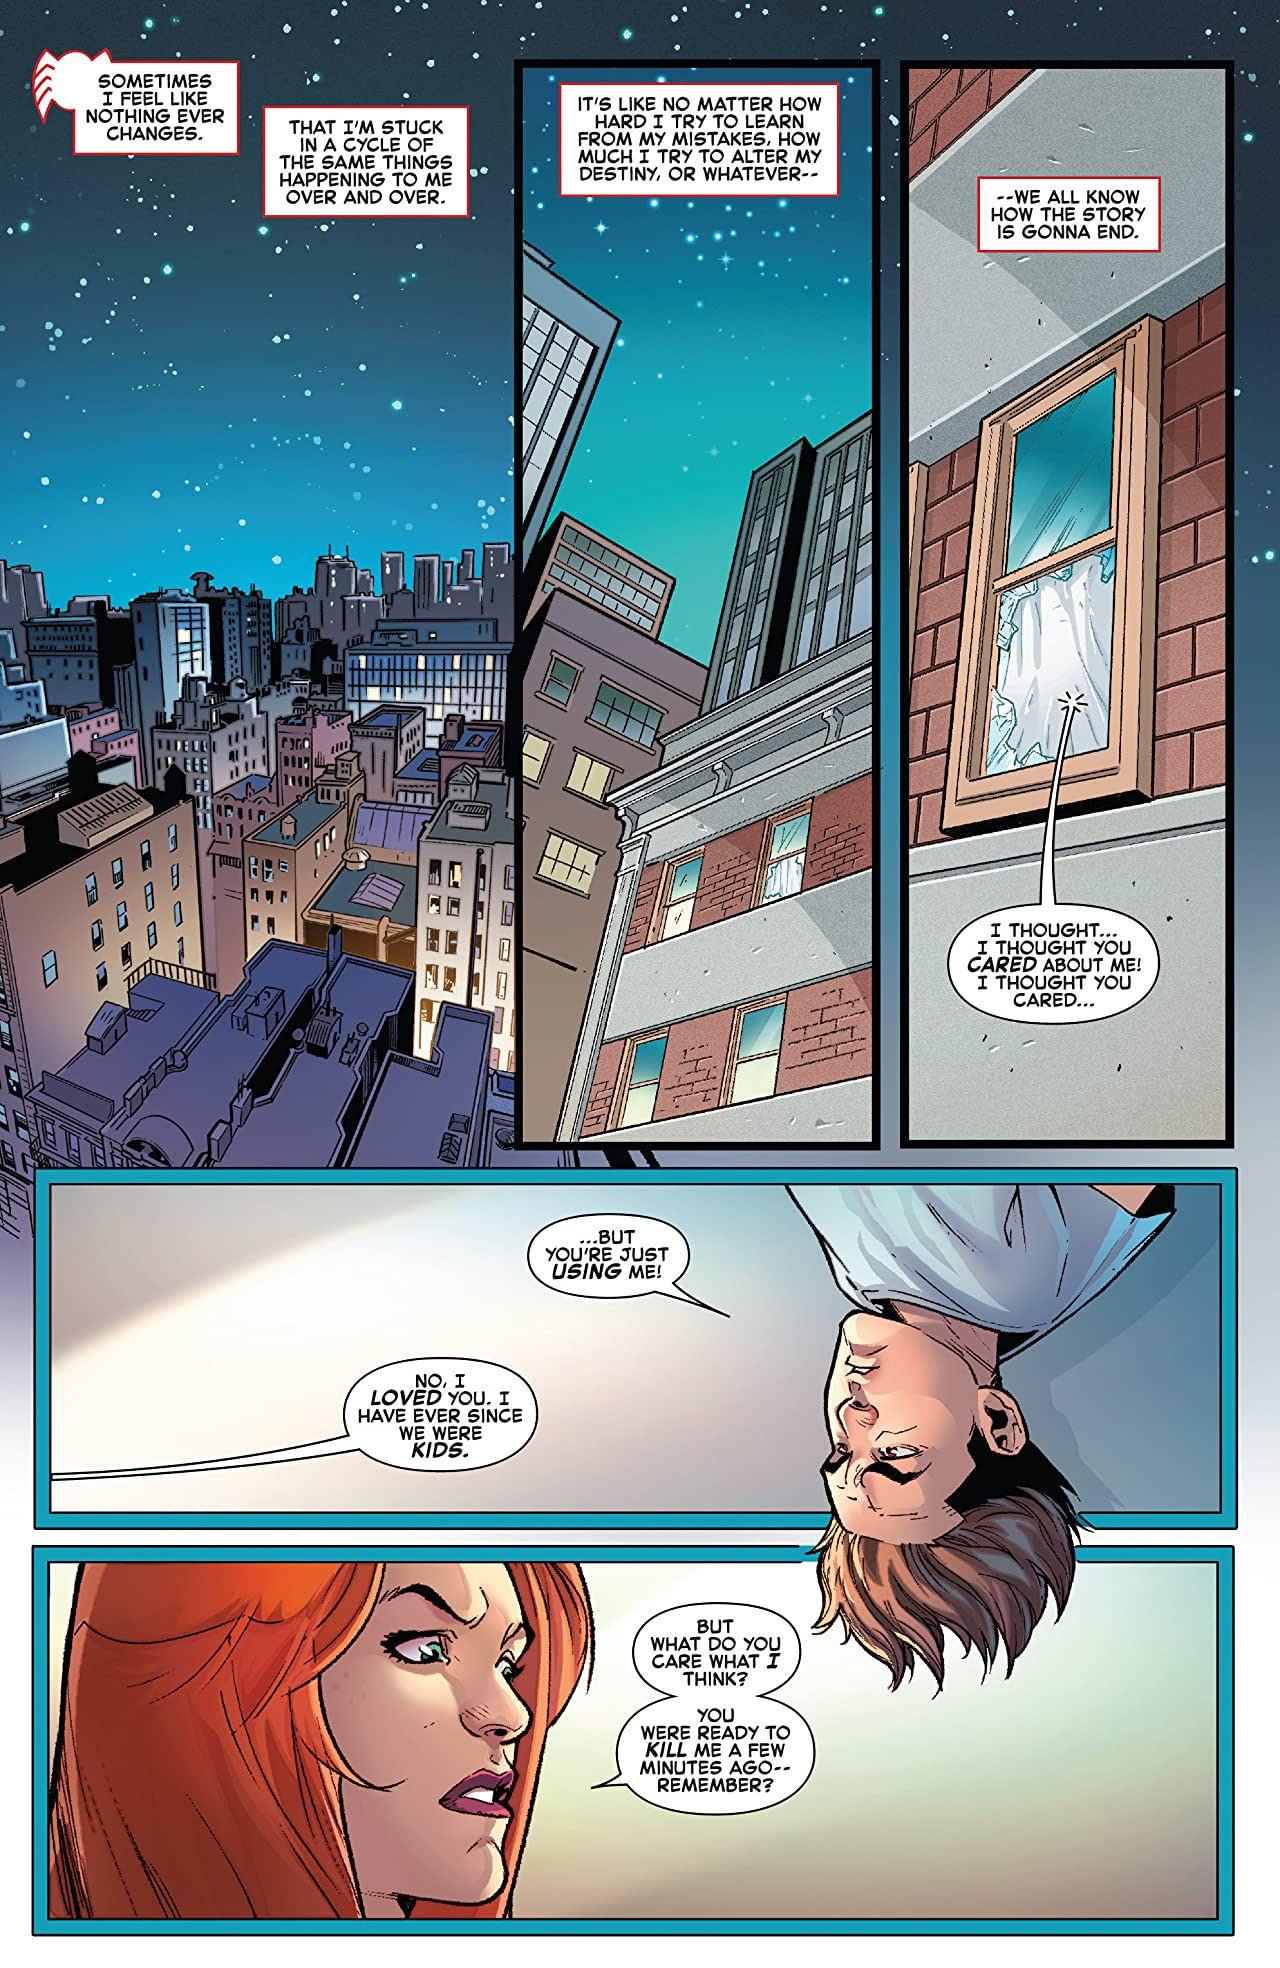 Amazing Spider-Man (2018-) #29